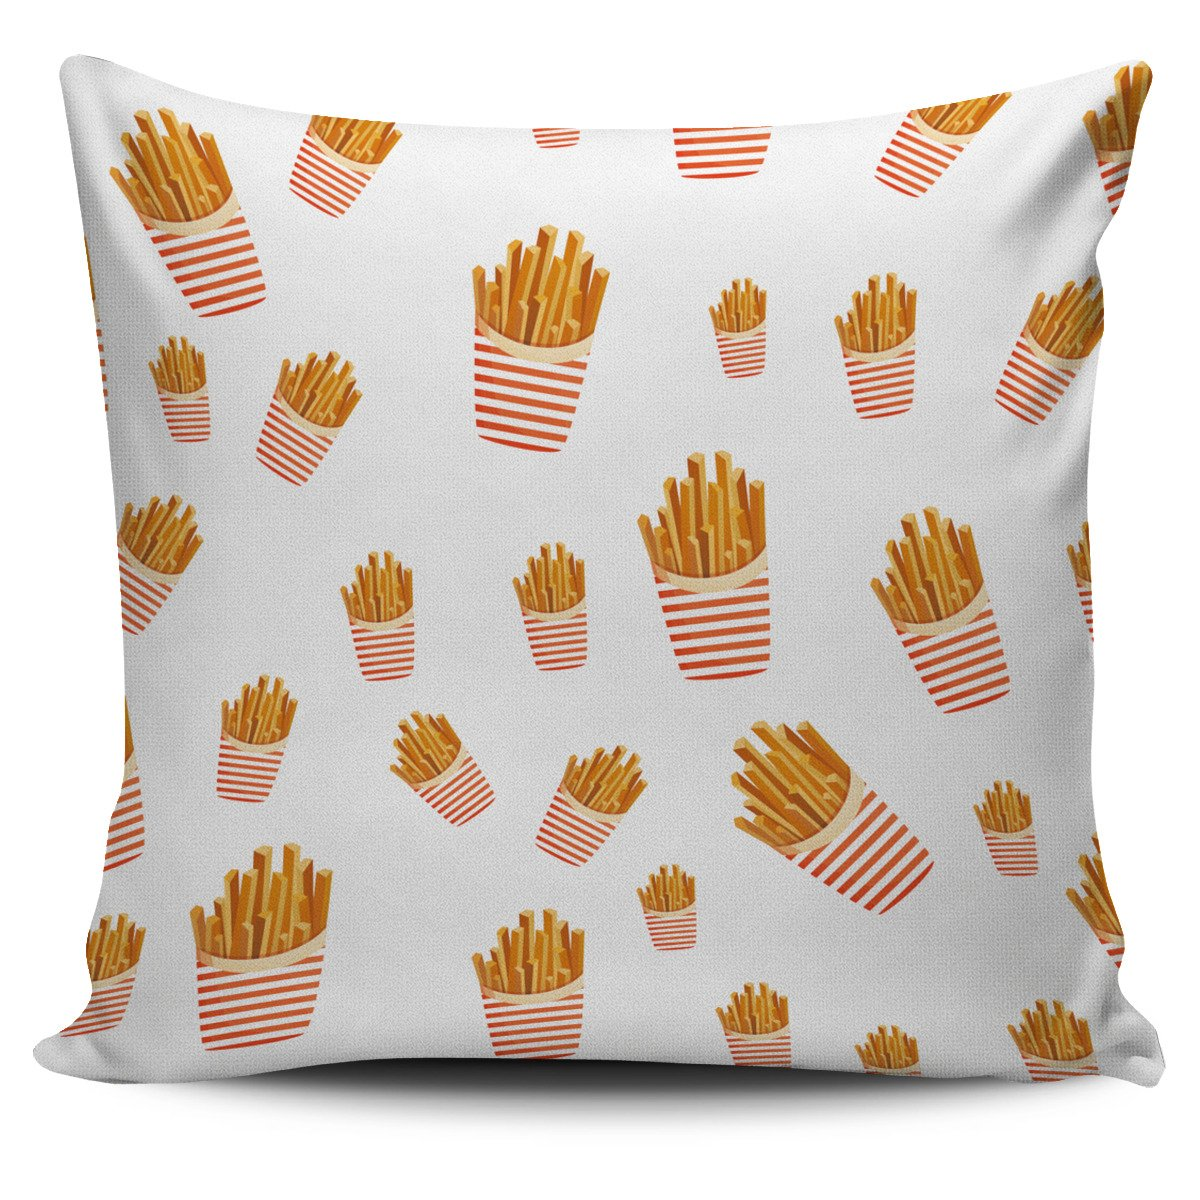 French Fries Collage Pillow Cover